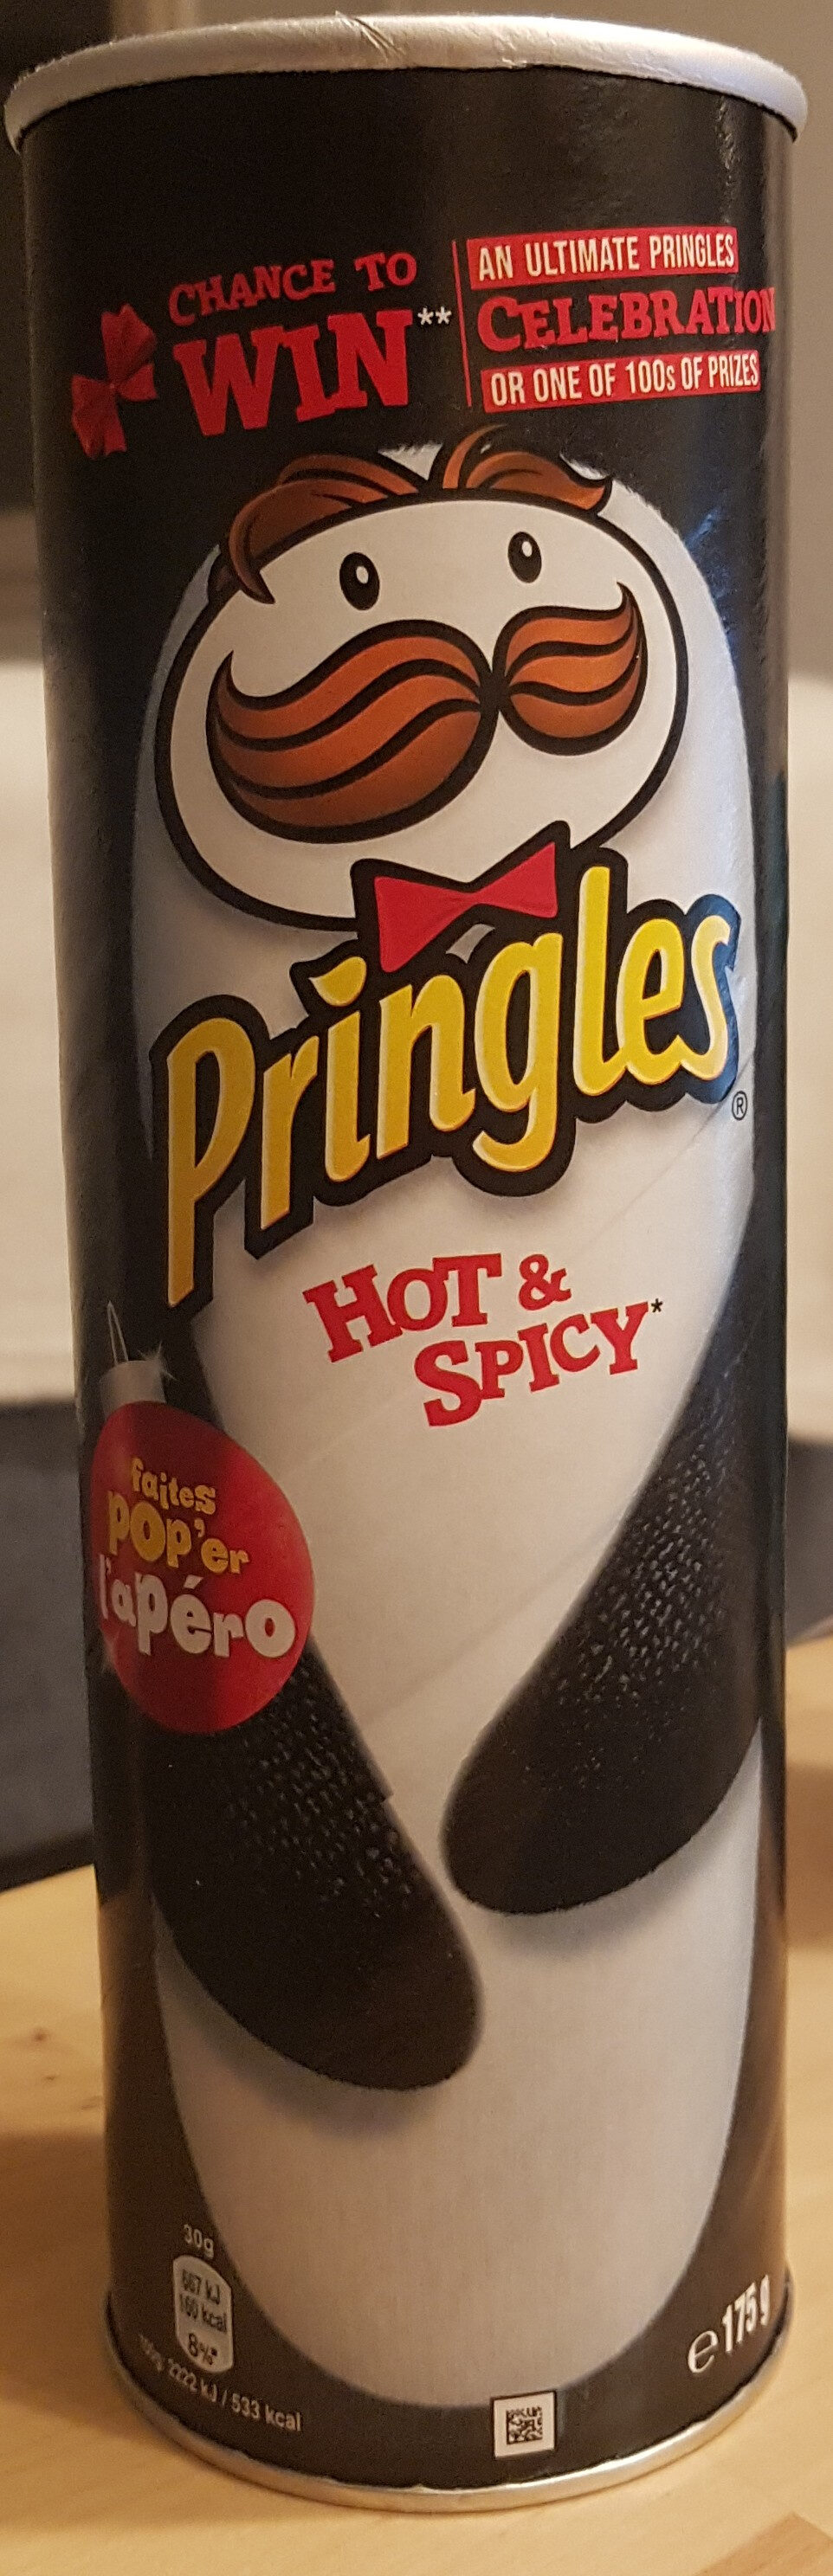 Pringles Hot & Spicy - Produit - fr